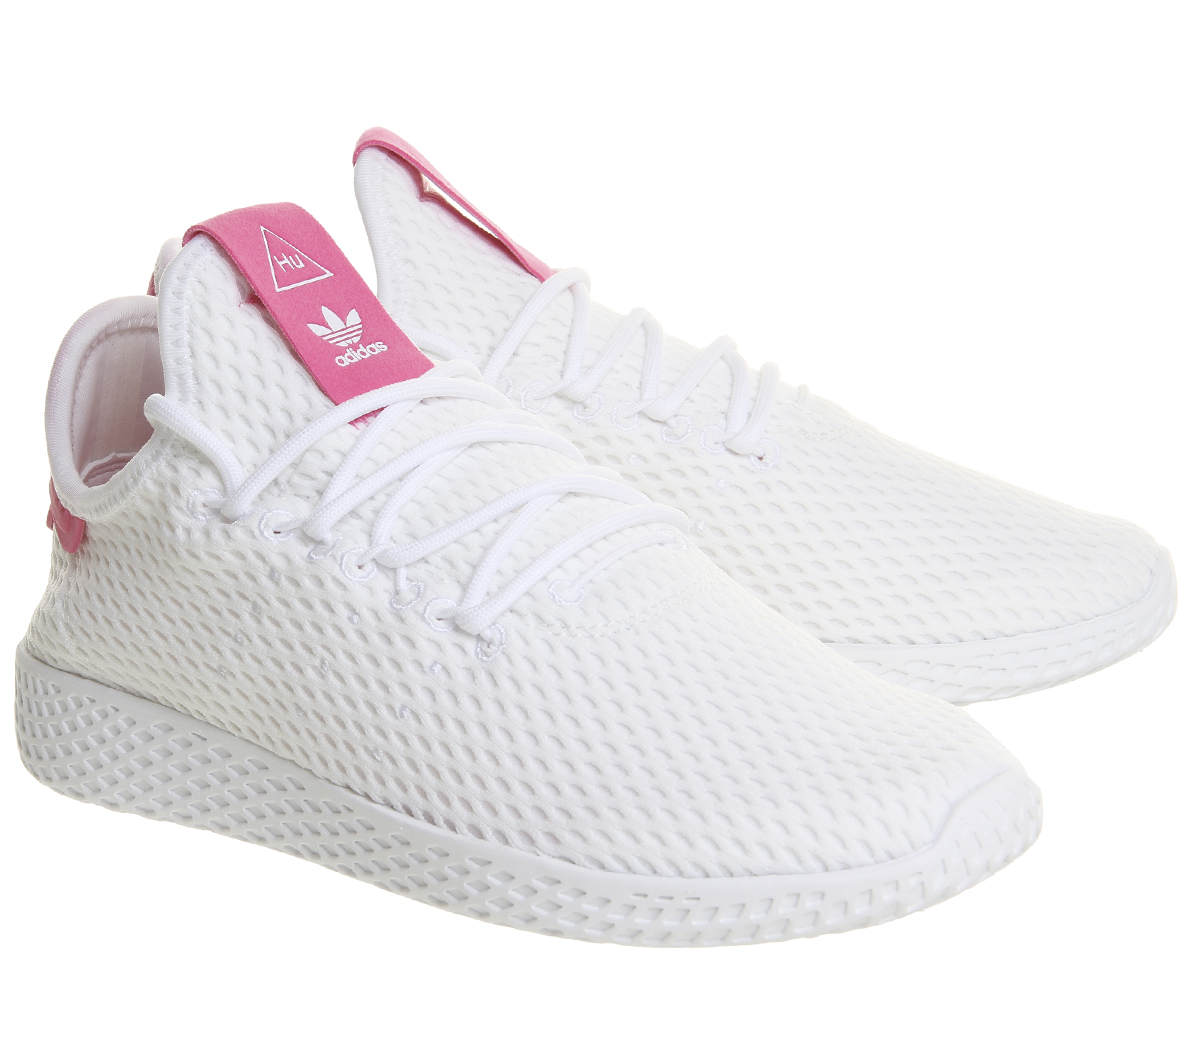 ce17a9fa6798 Adidas Pw Tennis Hu WHITE SEMI SOLAR PINK Trainers Shoes